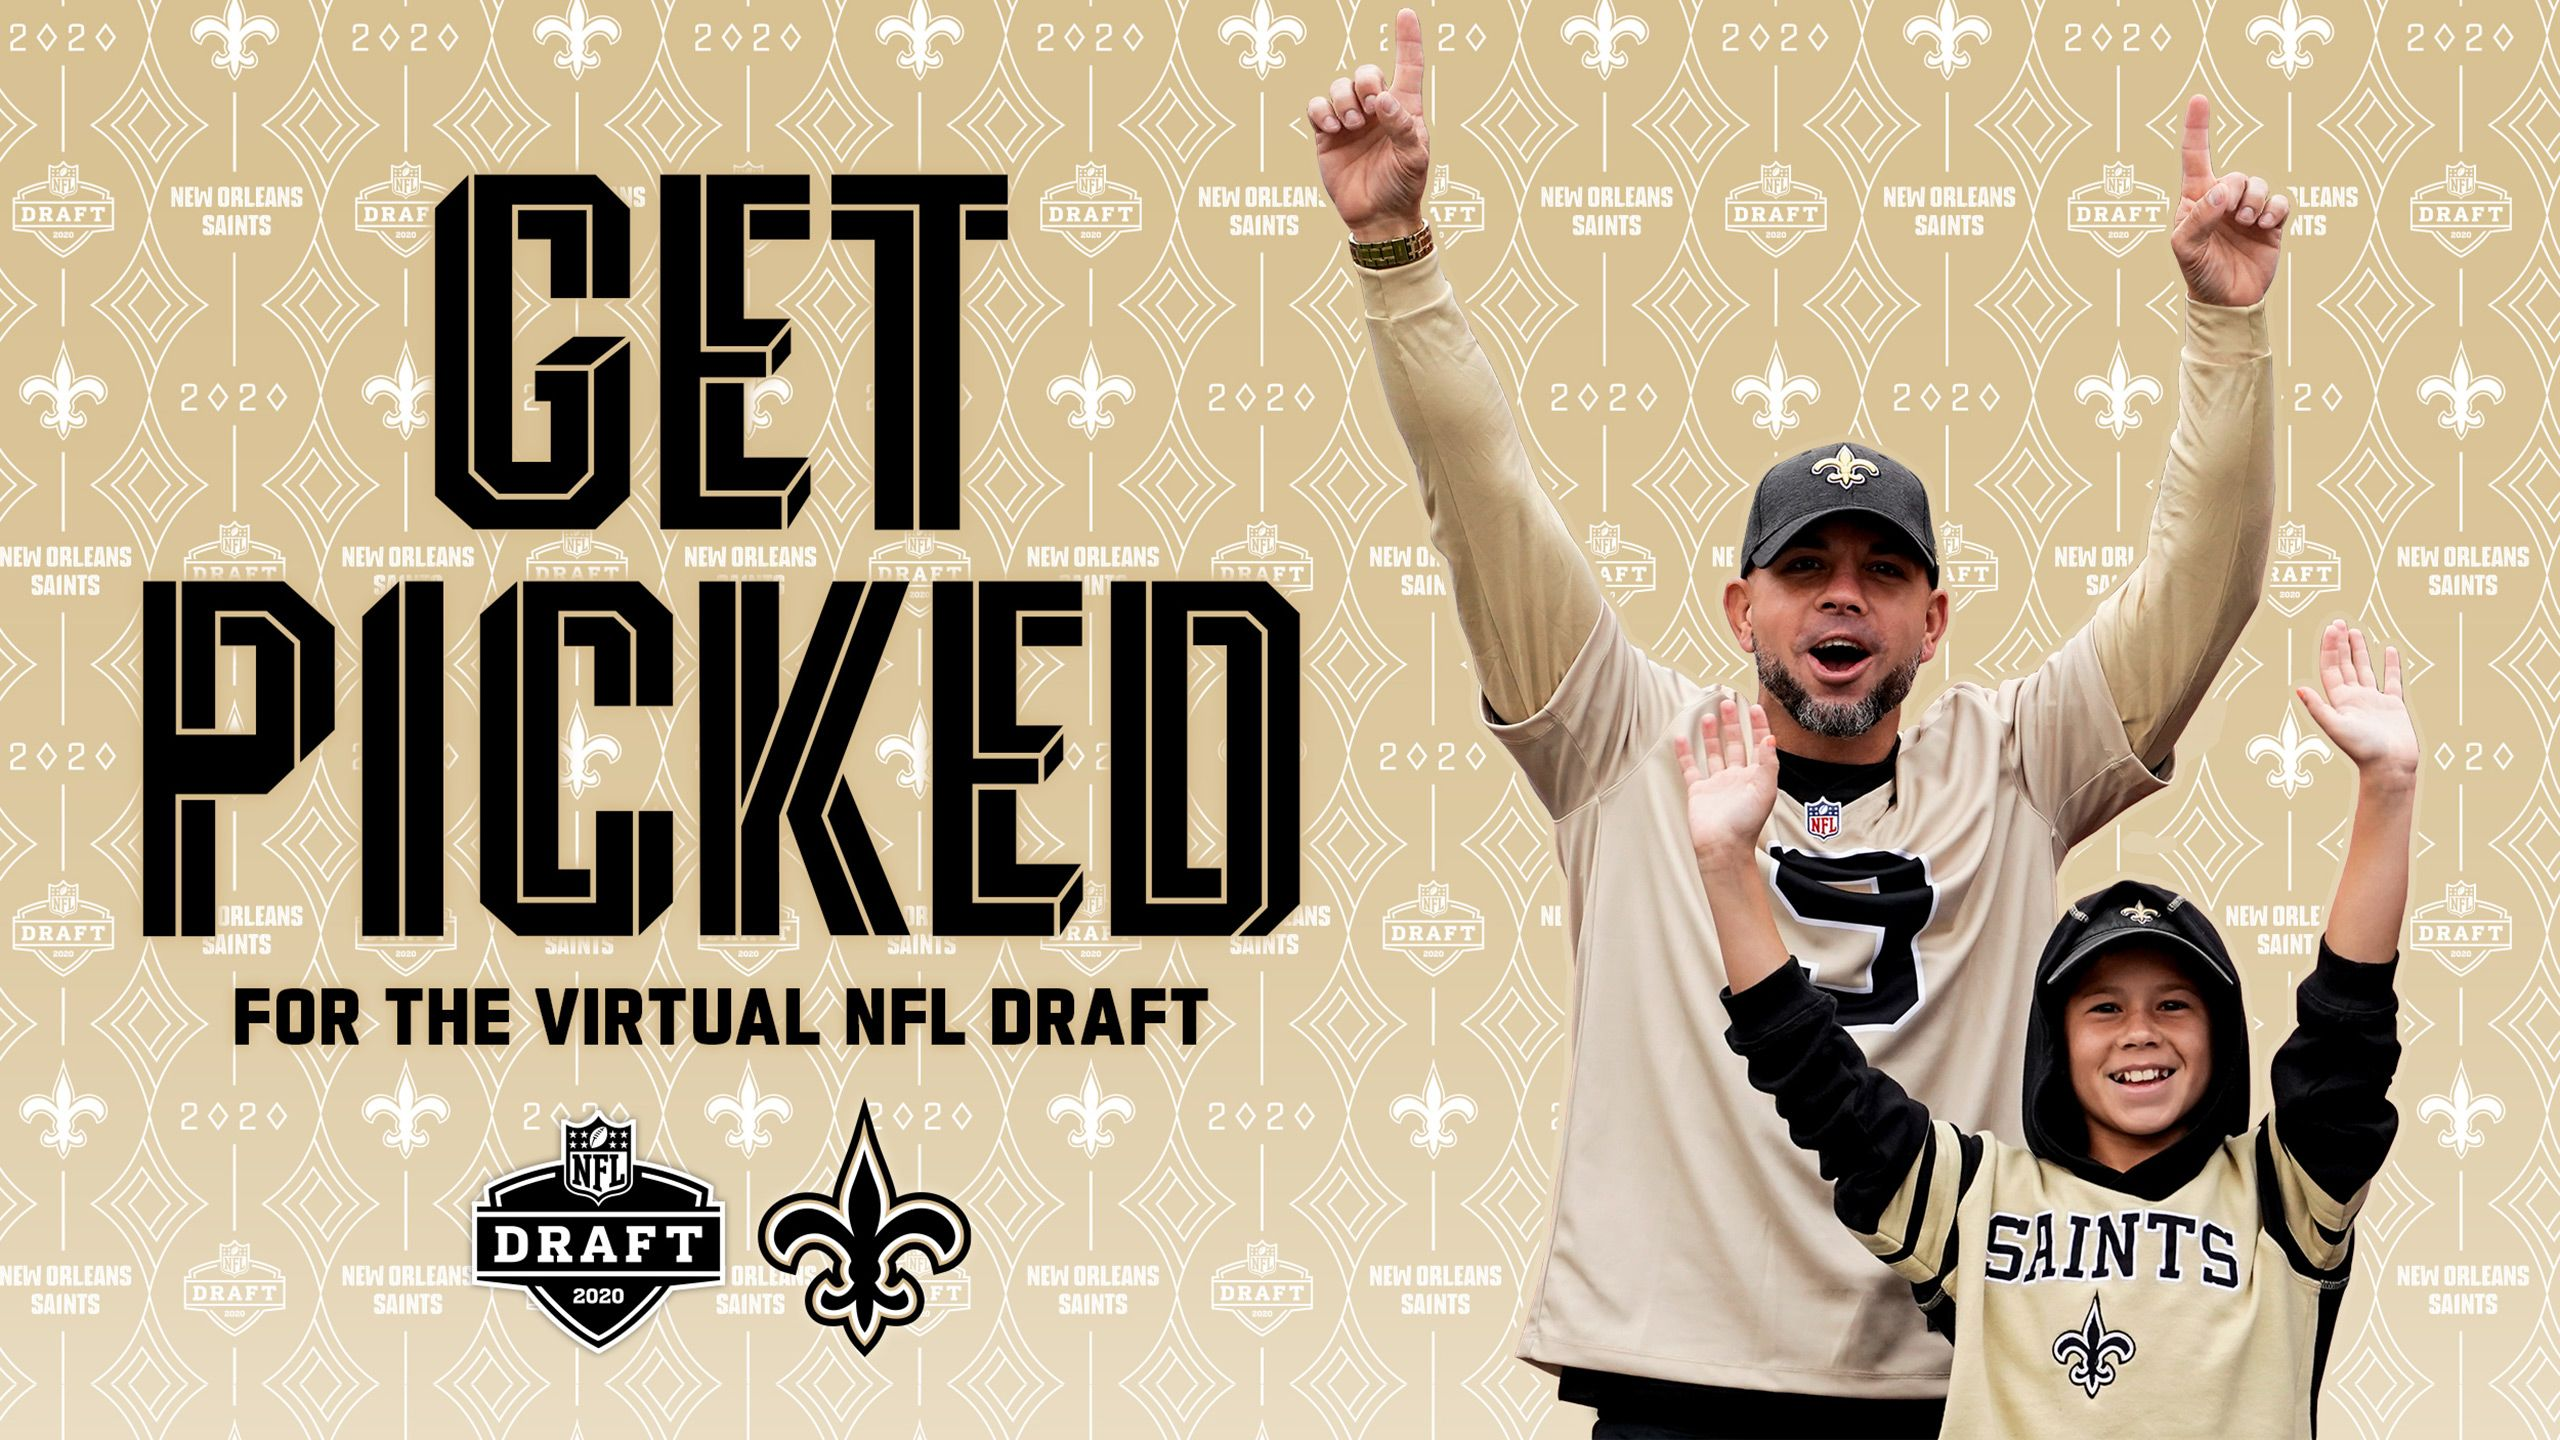 REPRESENT THE SAINTS LIVE AT THE 2020 NFL DRAFT!